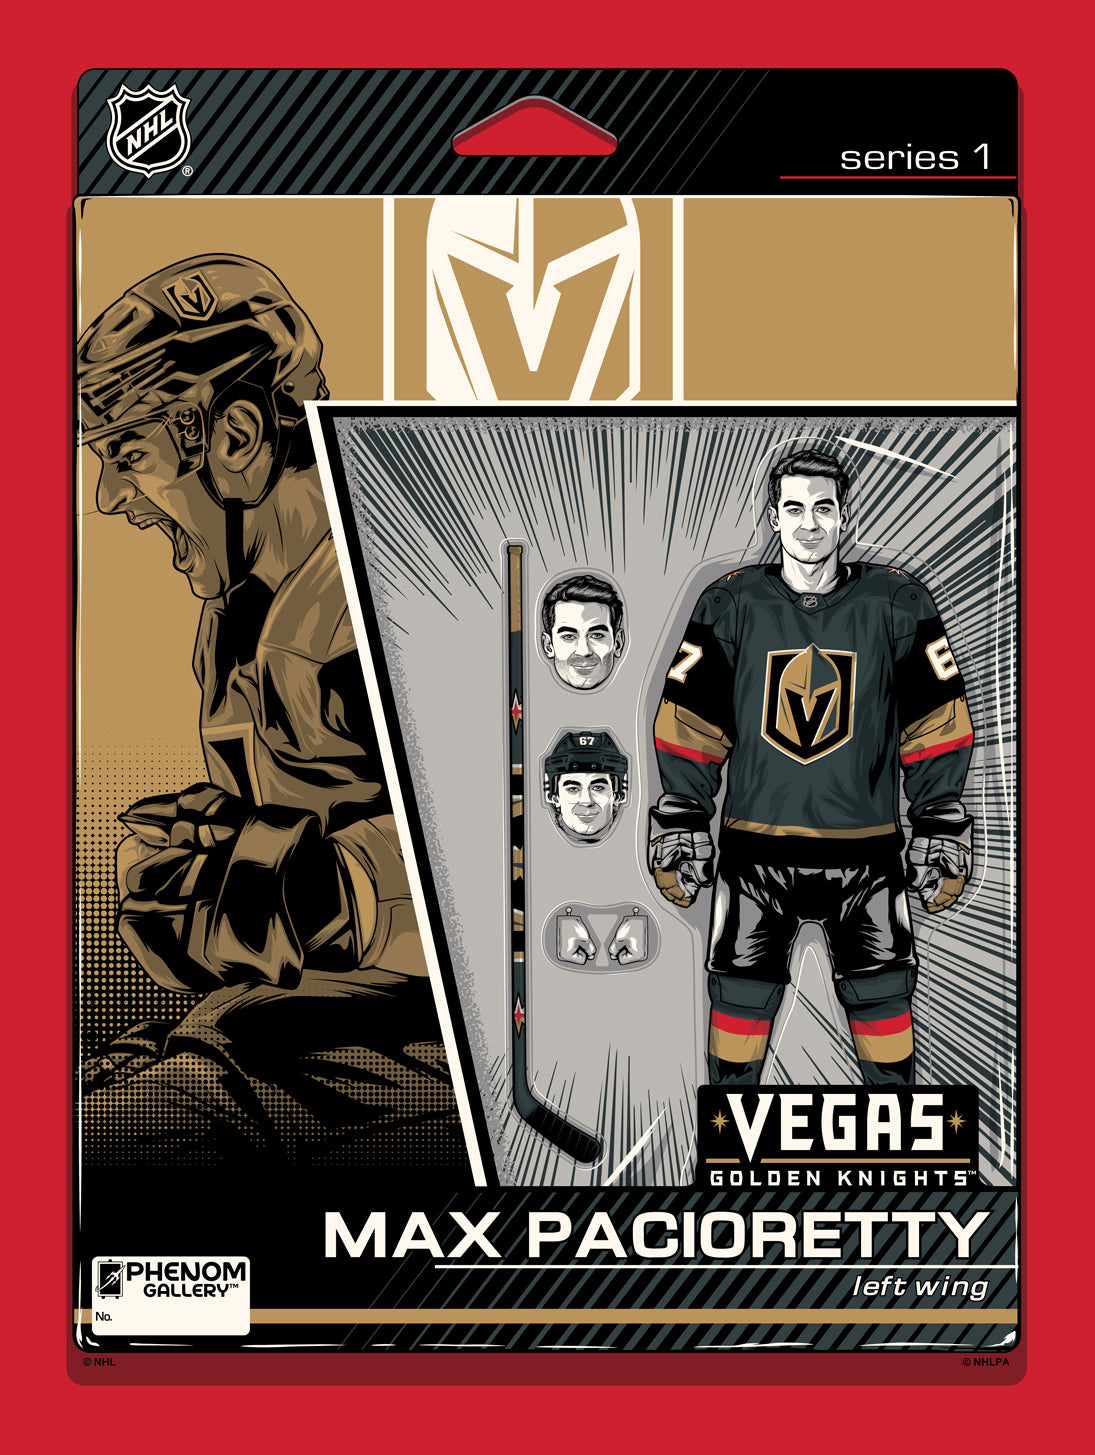 Vegas Golden Knights Max Pacioretty Action Figure Serigraph